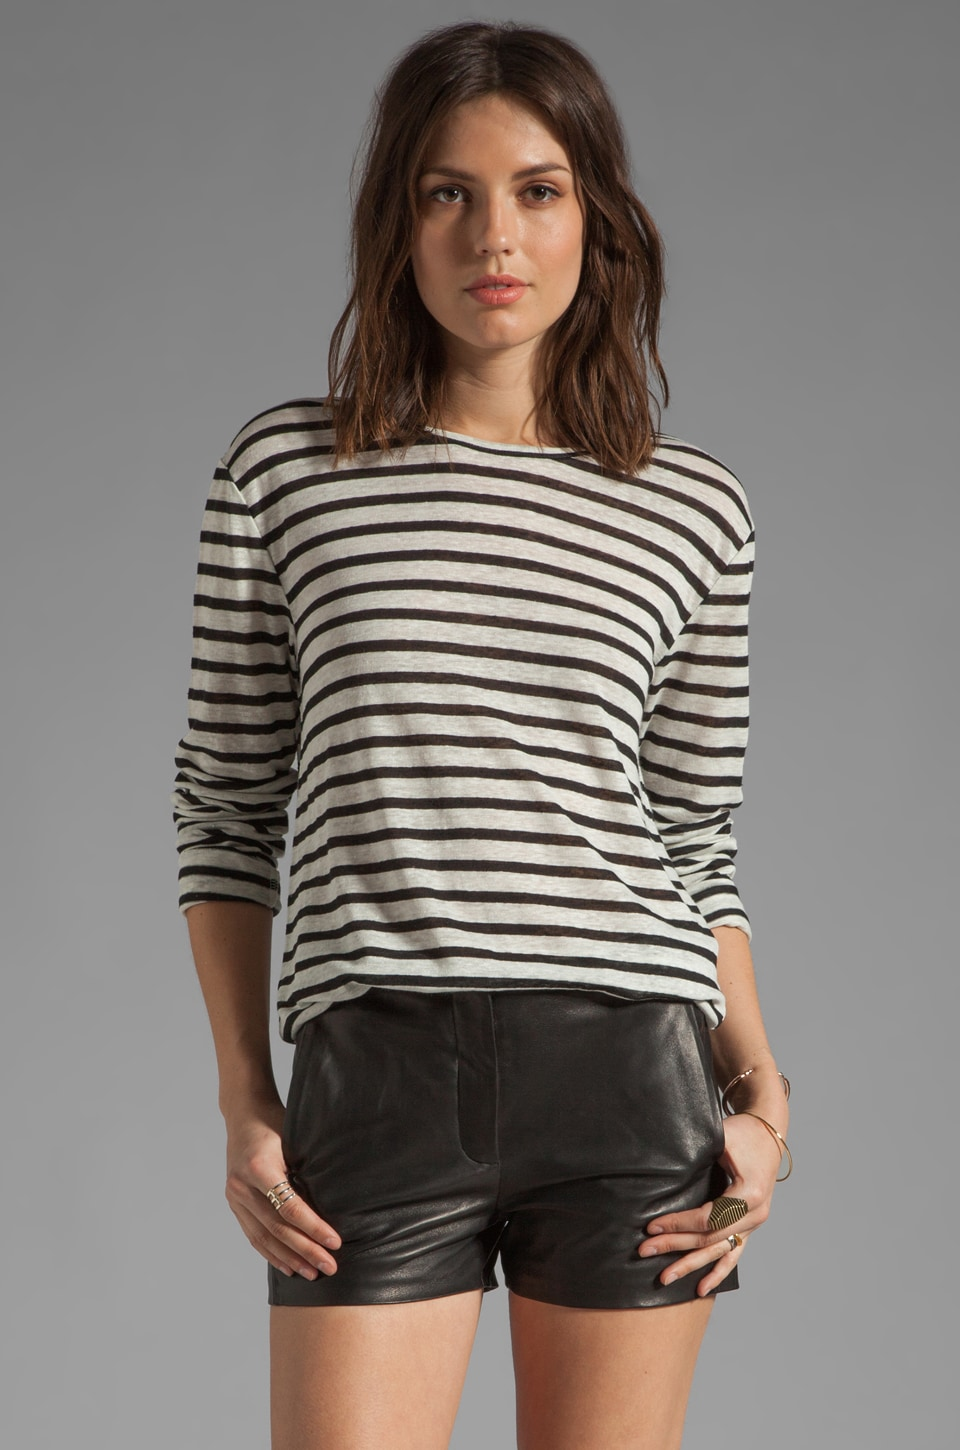 T by Alexander Wang Linen Stripe Long Sleeve Tee in Black & Bone